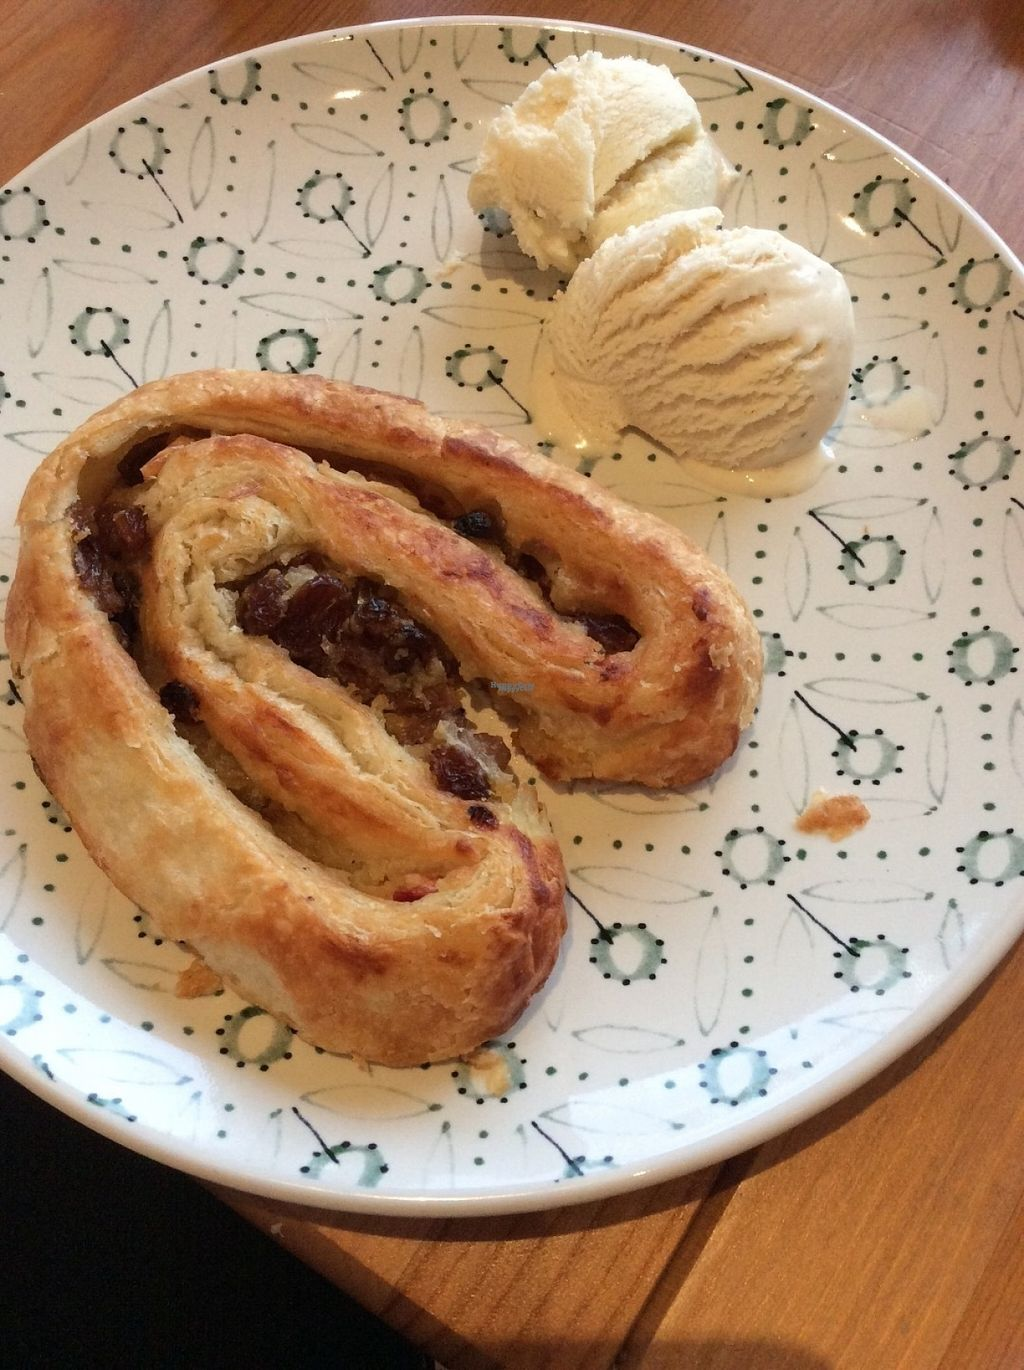 """Photo of Het Zaanse Bakkertje  by <a href=""""/members/profile/happyowl"""">happyowl</a> <br/>Apple-raisin puff pastry, eaten at home with some ice cream <br/> August 15, 2016  - <a href='/contact/abuse/image/70817/168978'>Report</a>"""